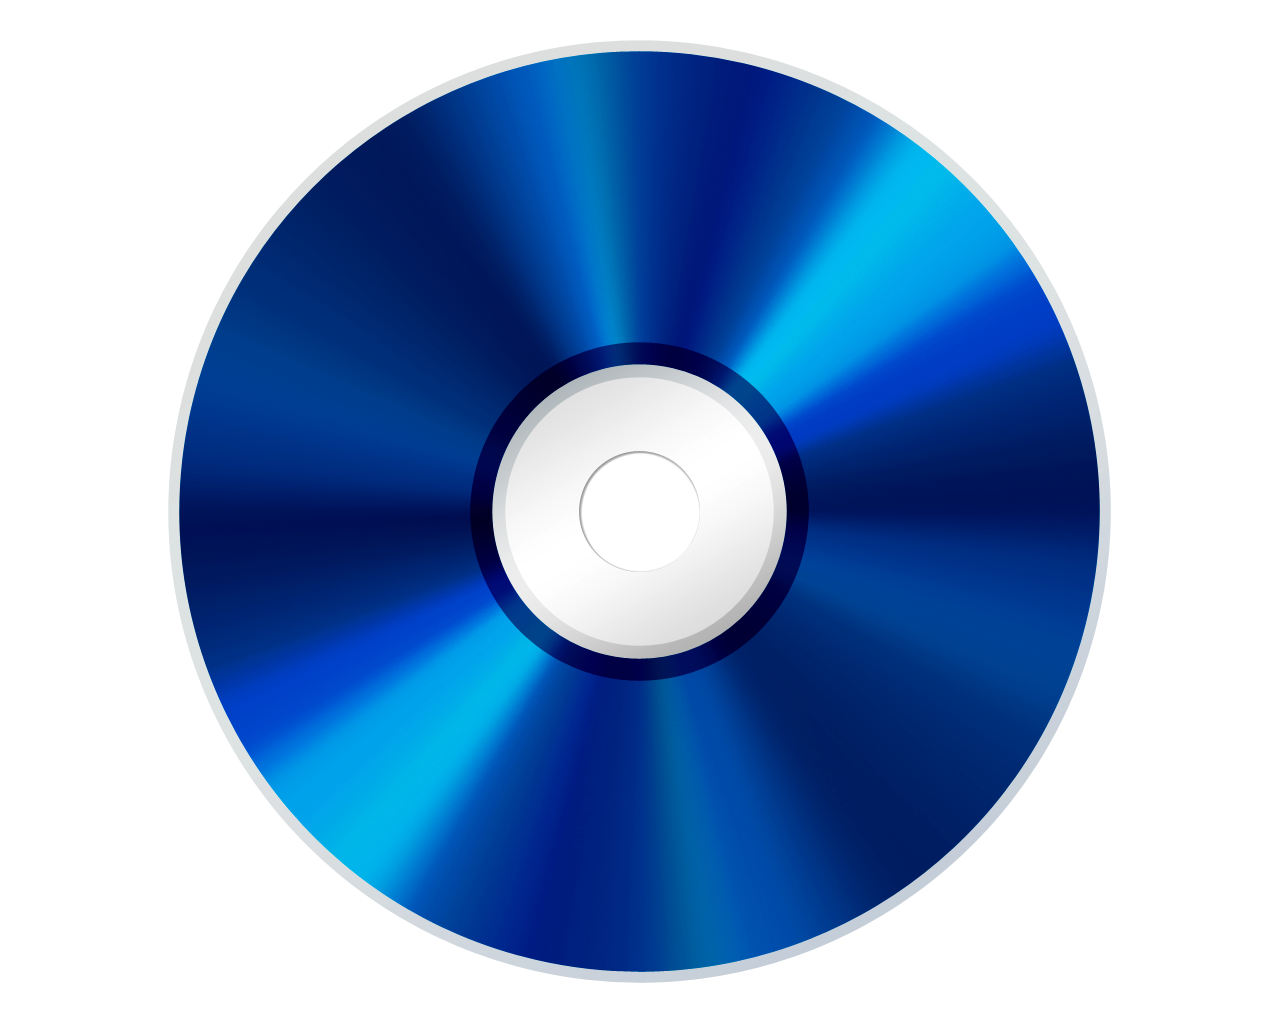 compact cd, dvd disk company png logo 6303